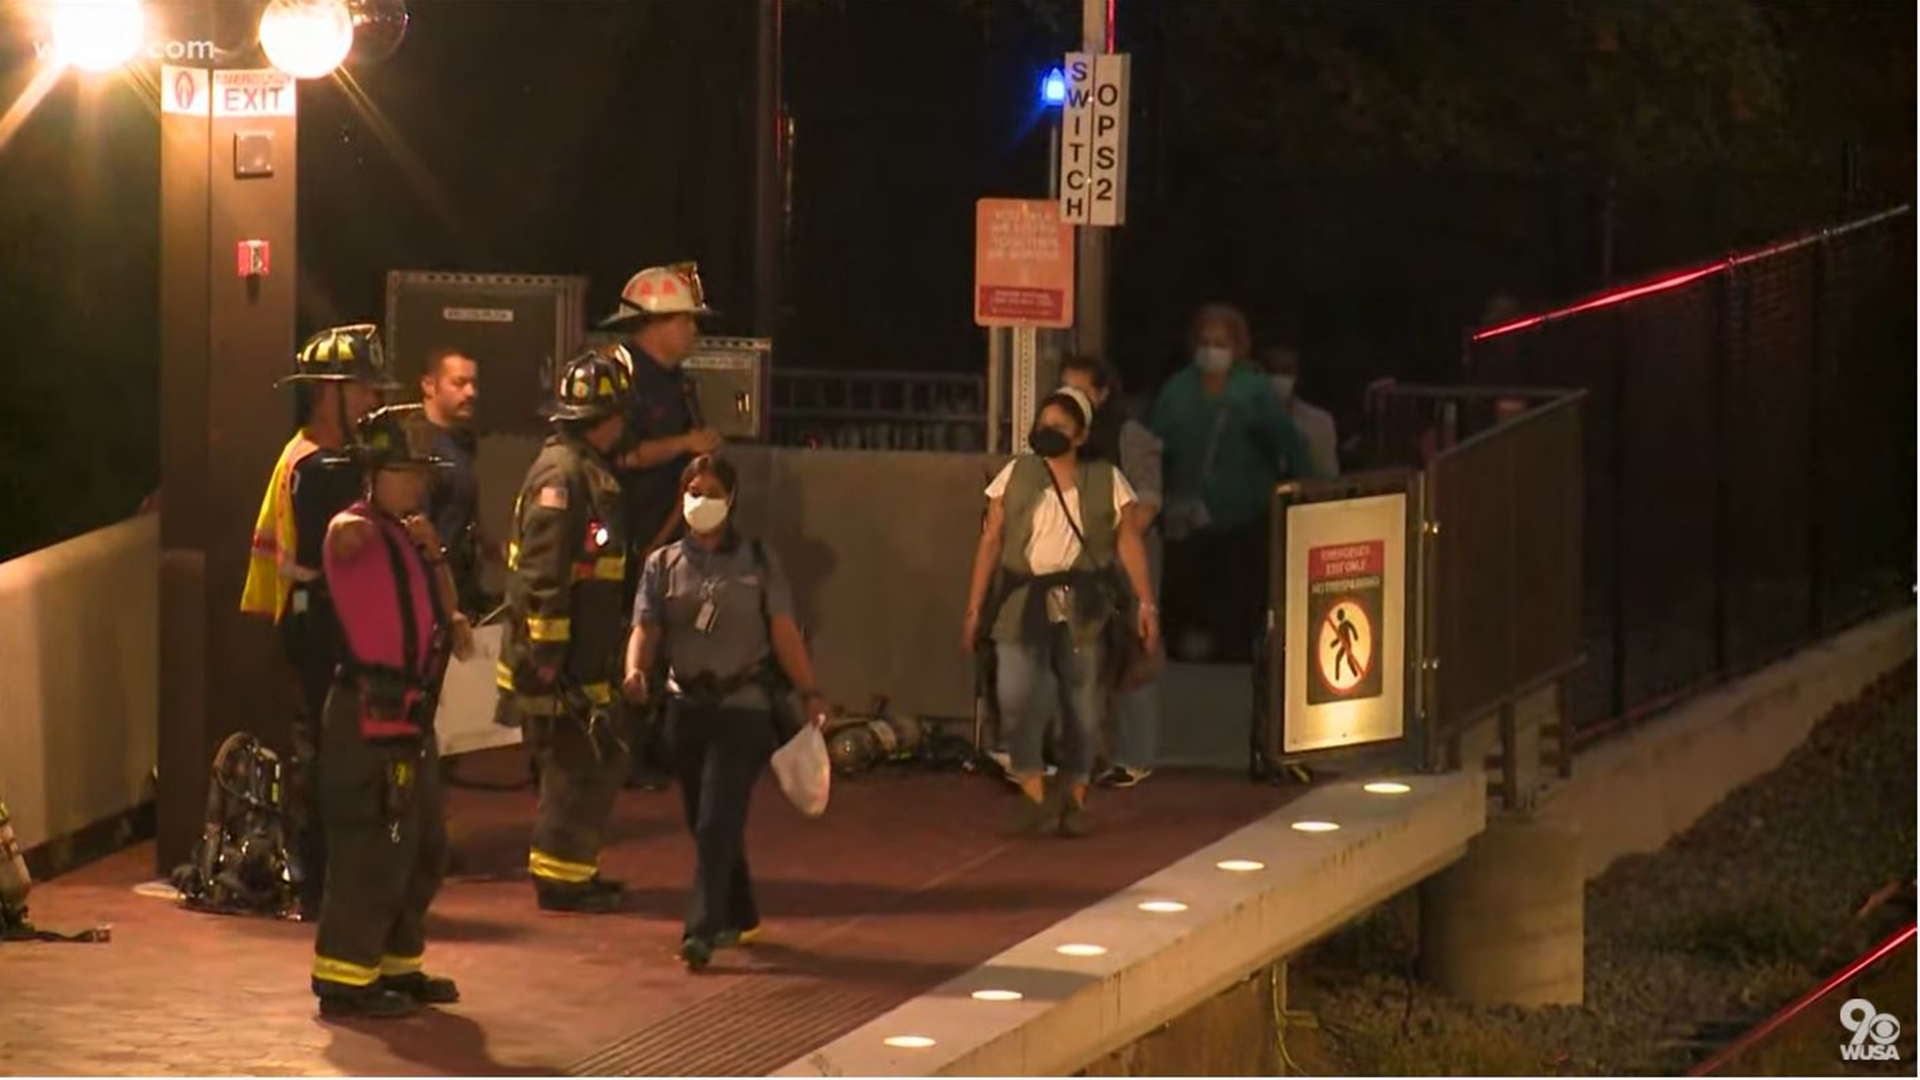 US: Hundreds evacuated from derailed metro train in Arlington